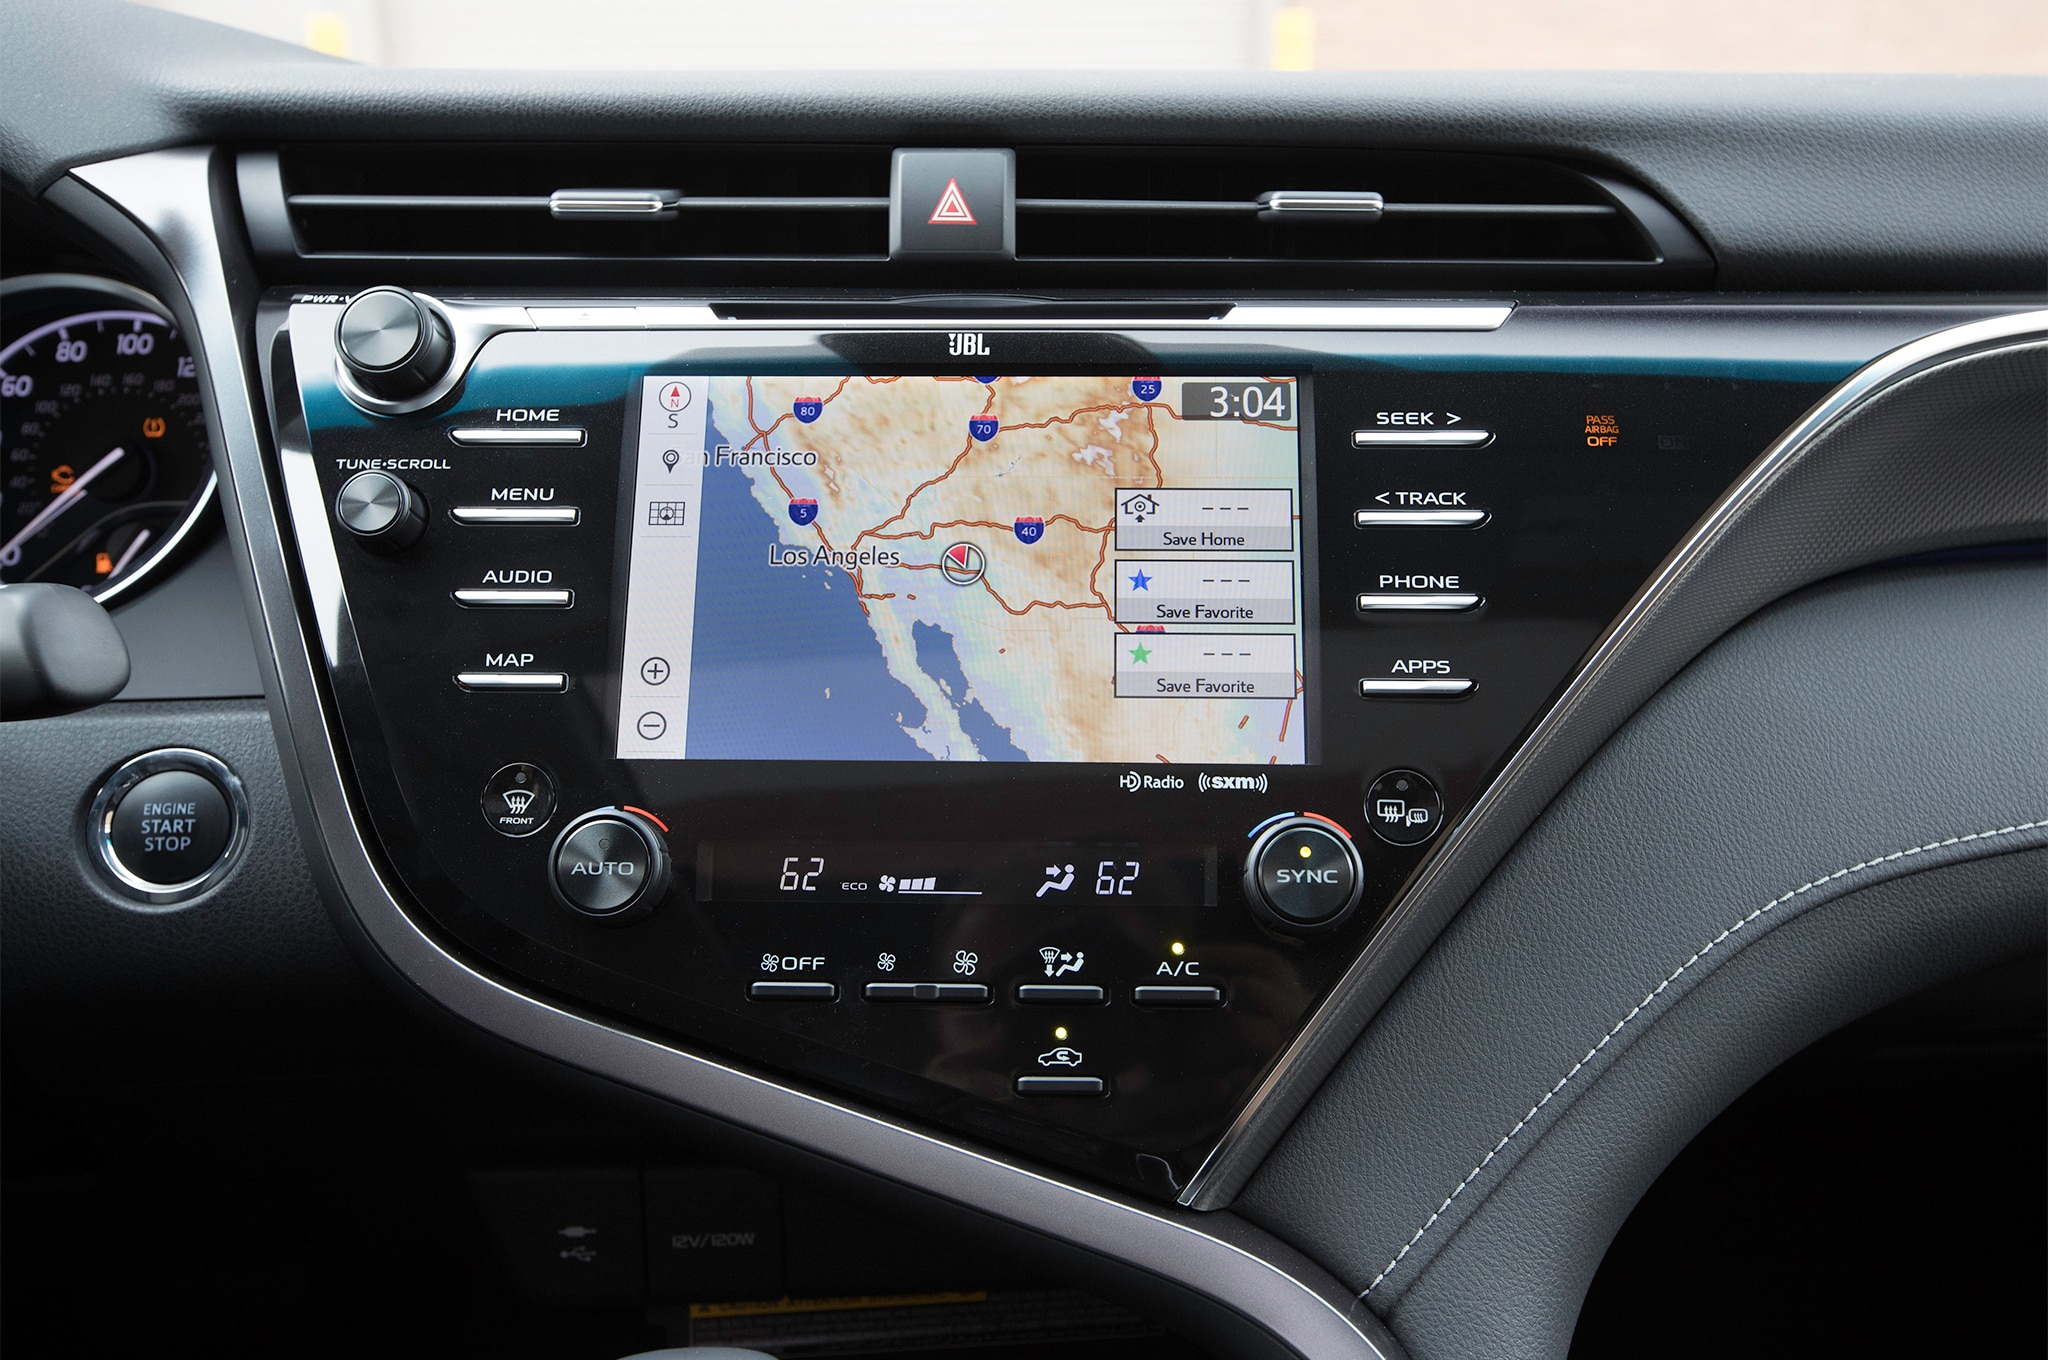 2018 infiniti android auto.  2018 the infotainment platform will arrive on the 2018 toyota camry in us  late this summer completely redesigned sits toyotau0027s new tnga  on infiniti android auto i